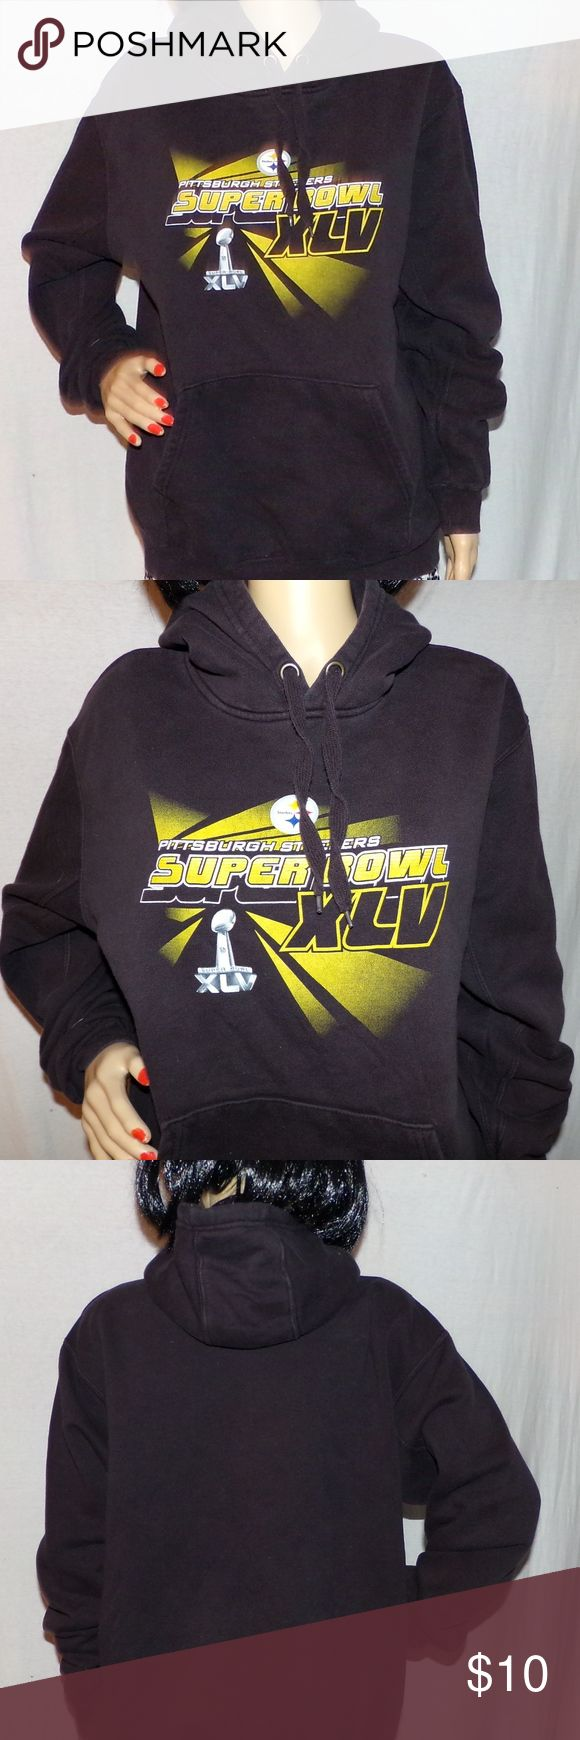 """Pittsburgh Steelers Hoodie Super Bowl XLV 2010 M Pittsburgh Steelers Hoodie Super Bowl XLV 2010 Hoodie NFL Brand M Vintage Find Low & Fast Shipping. NFL Team Apparel Brand and has their label in it. This is in VG Vintage condition 80/20 Cotton Polyblend MEASUREMENTS Size is M (Medium) L-25""""/Across the Chest-22""""/Sleeve-24"""" BUNDLE 2 or more of our items for a FAIRY SPECIAL PRICE or make us a FAIR OFFER the Fairies her Love FAIR OFFERS :) NFL Team Apparel Tops Sweatshirts & Hoodies"""